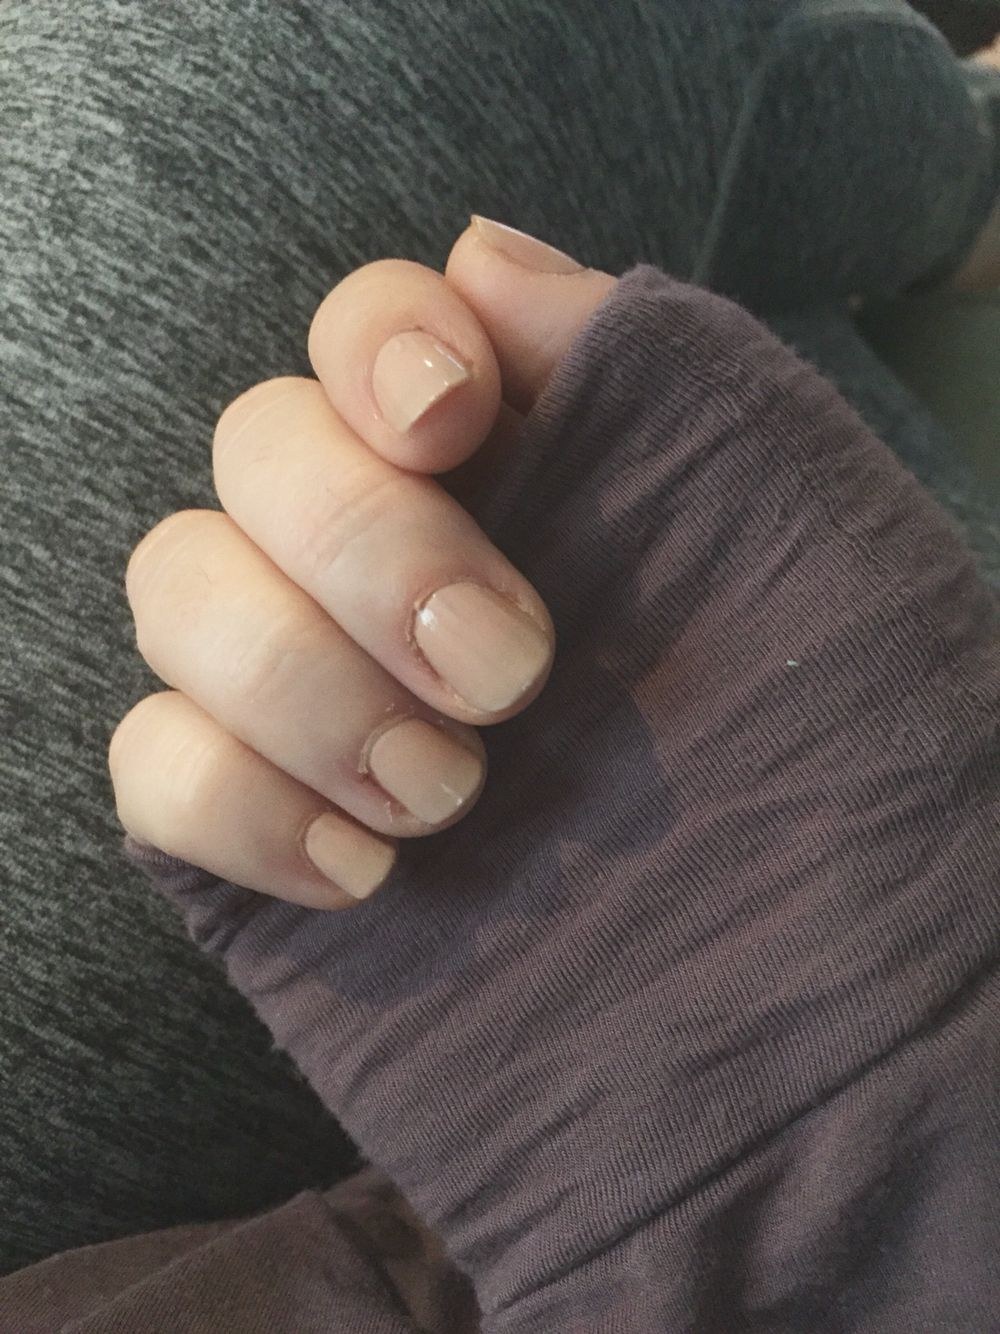 Growing Out My Nails After Biting Them My Whole Life This Is The Longest They Ve Ever Been Short Natural Nails How To Grow Nails Short Natural Nails Nails